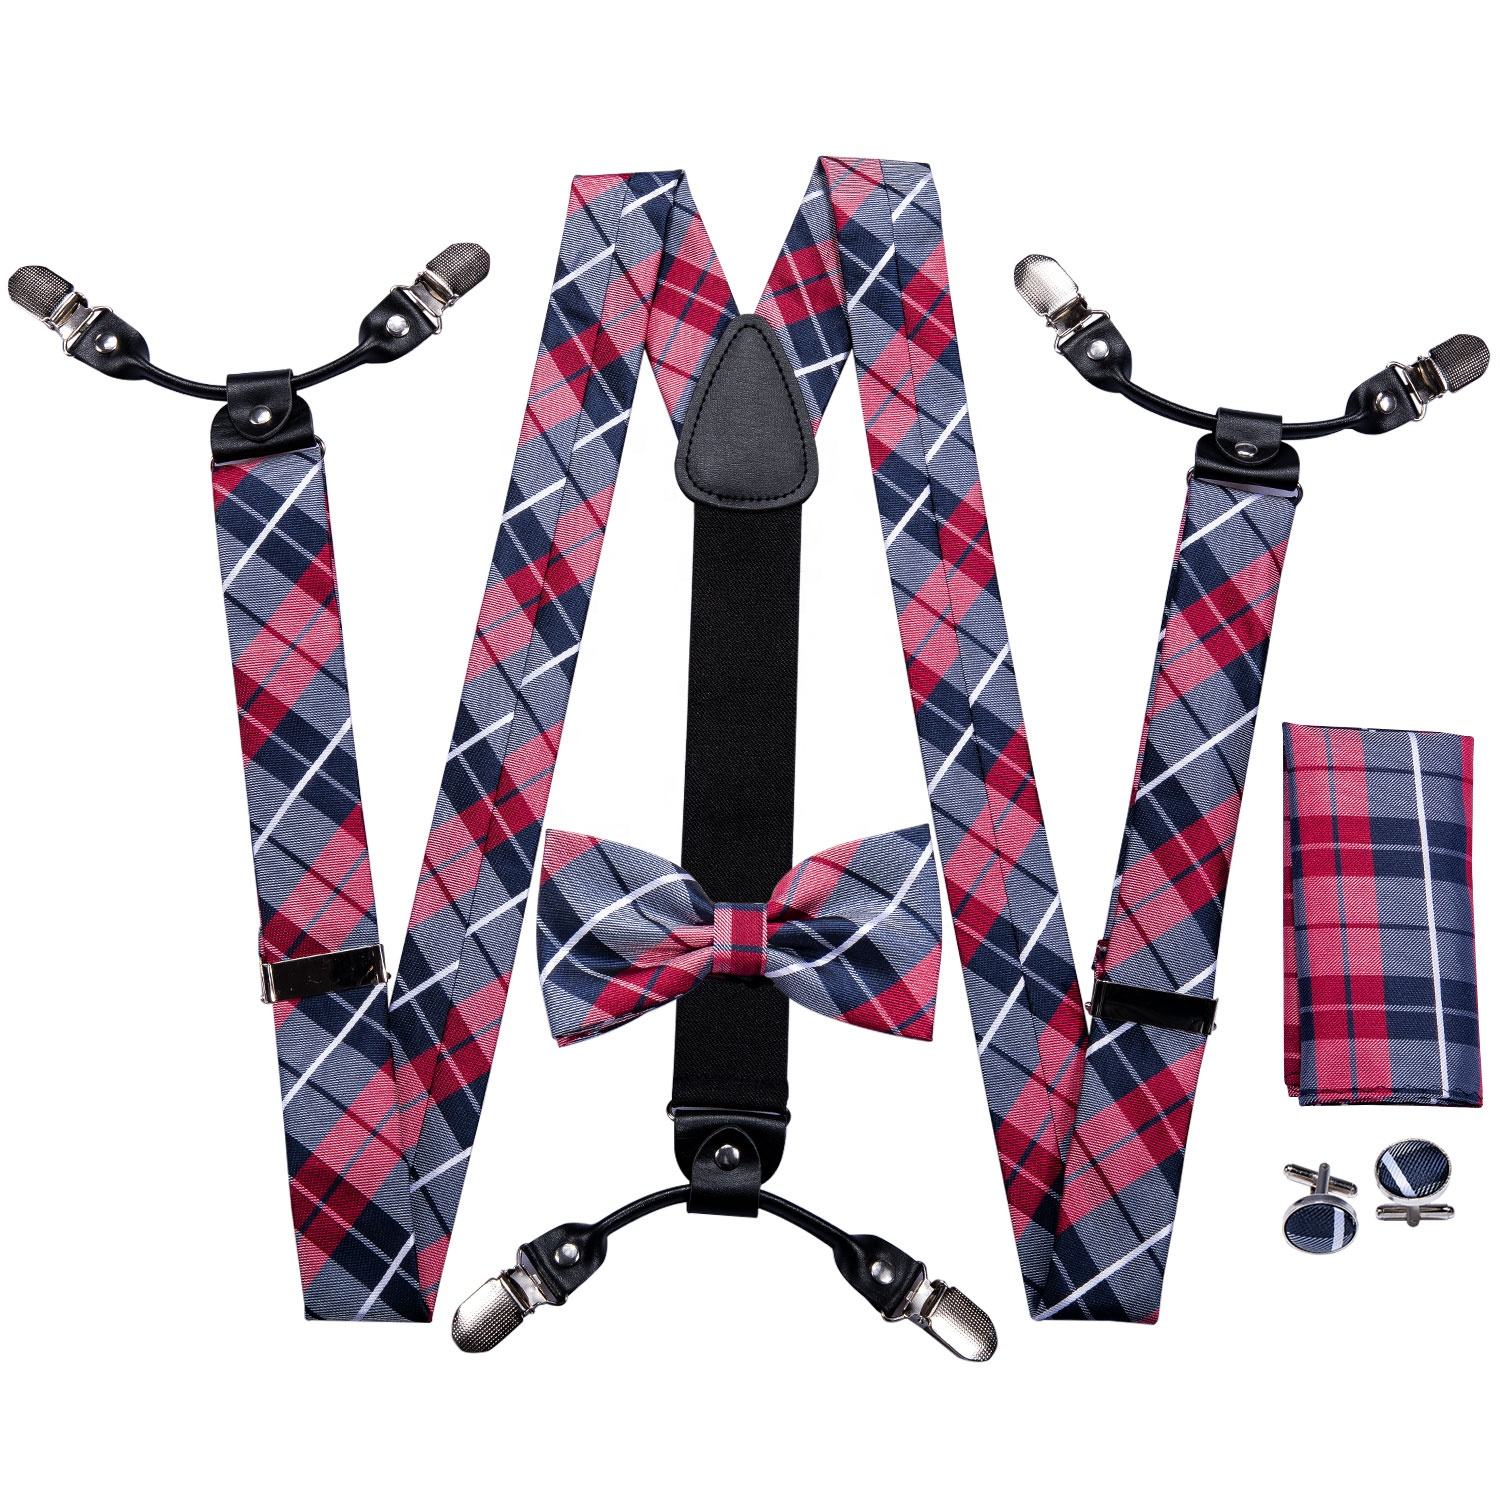 Wholesale Clips Elastic Braces Custom Leather <strong>Men</strong> <strong>Suspenders</strong> and Bow Tie Set